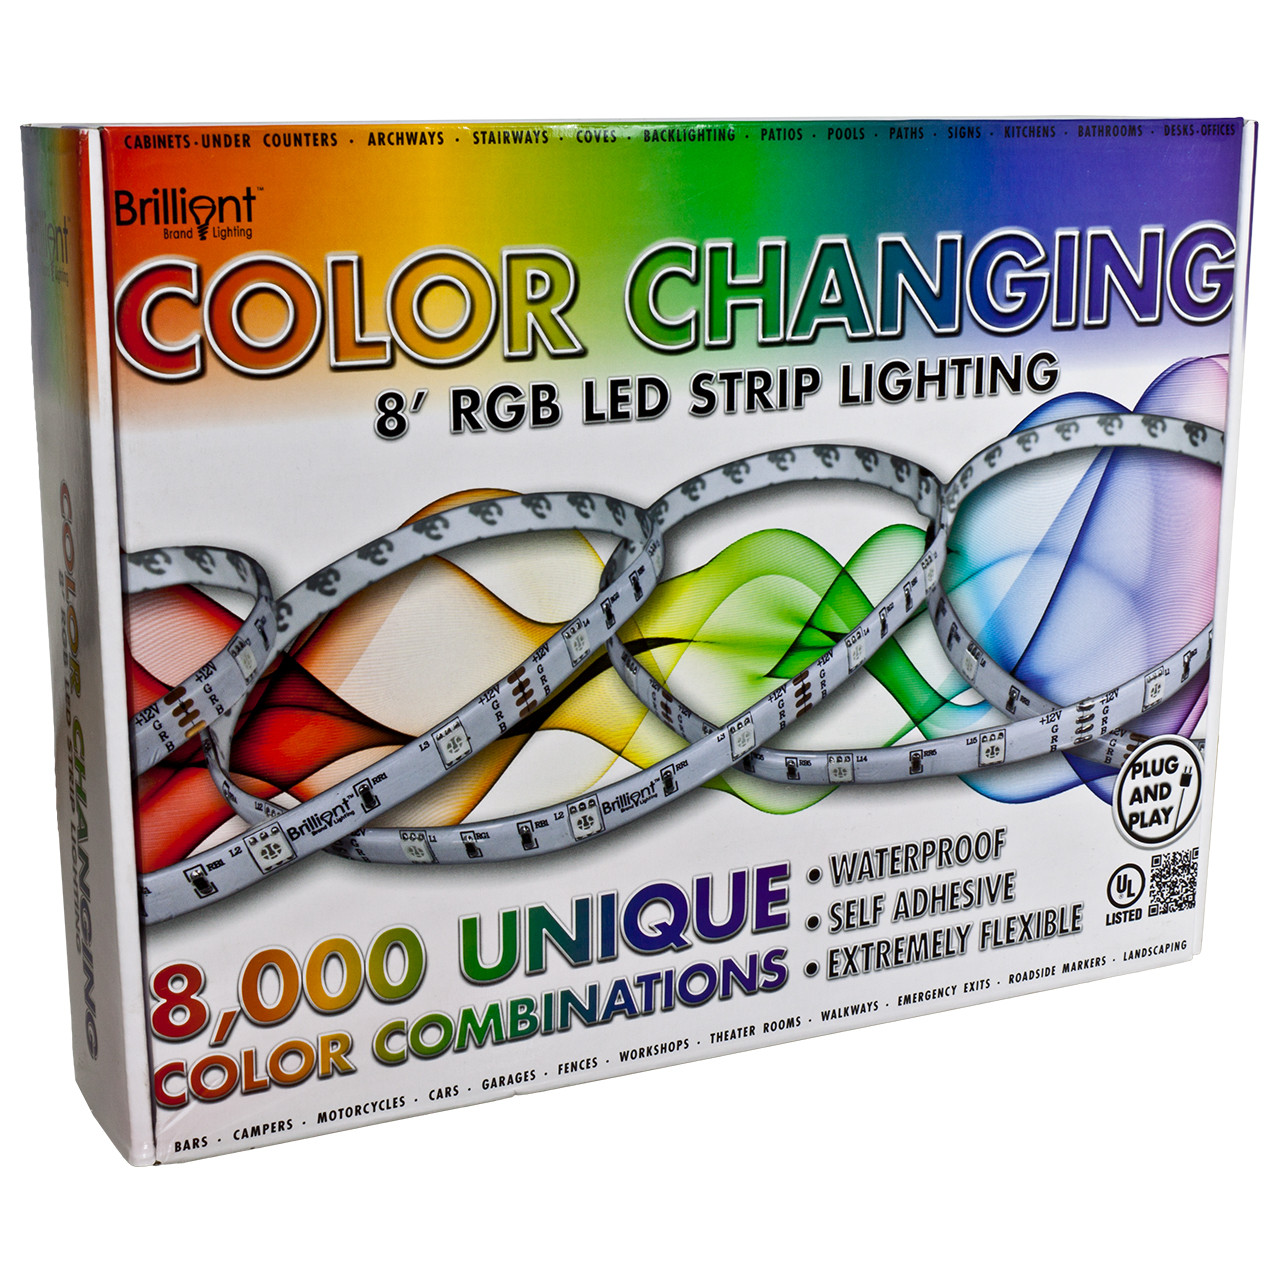 Rgb color changing led strip light 12 volt high output smd 5050 rgb color changing led strip light 12 volt high output smd 5050 mozeypictures Gallery